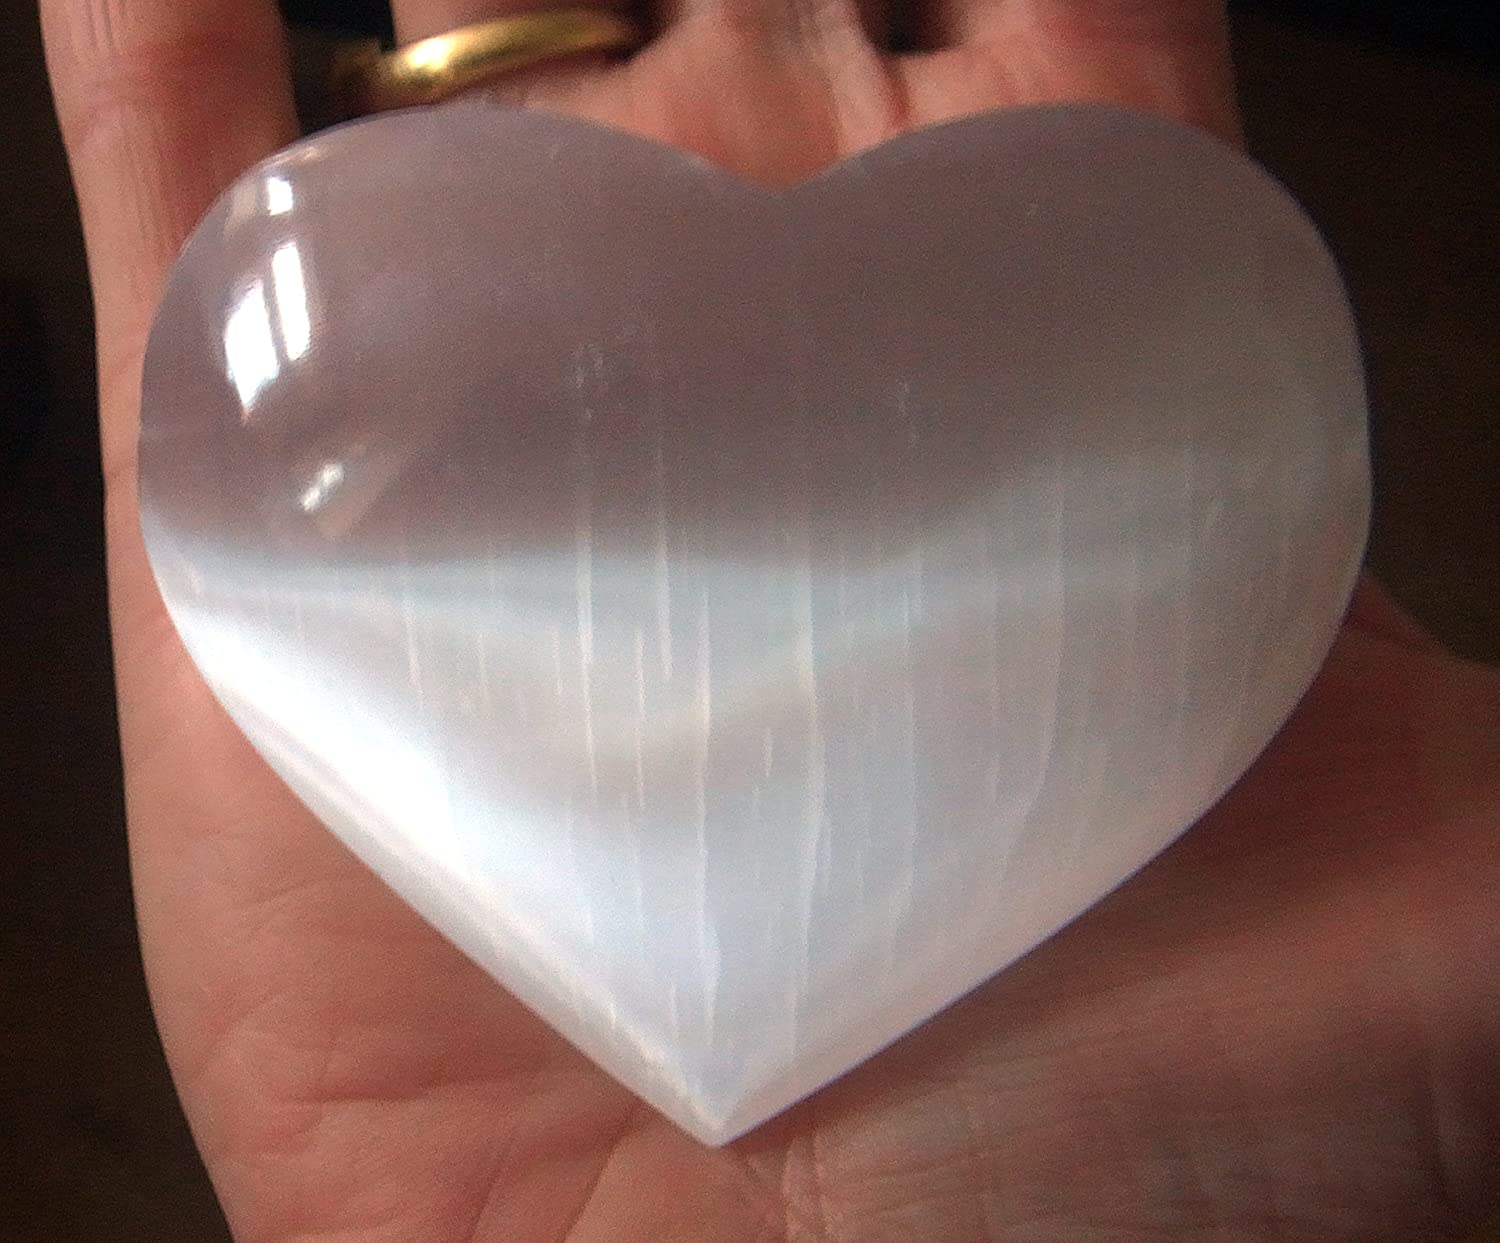 SELENITE LARGE 80mm ANGELIC WHITE CRYSTAL PUFF HEART HEALING REIKI by Fossil Cavern BRAZIL